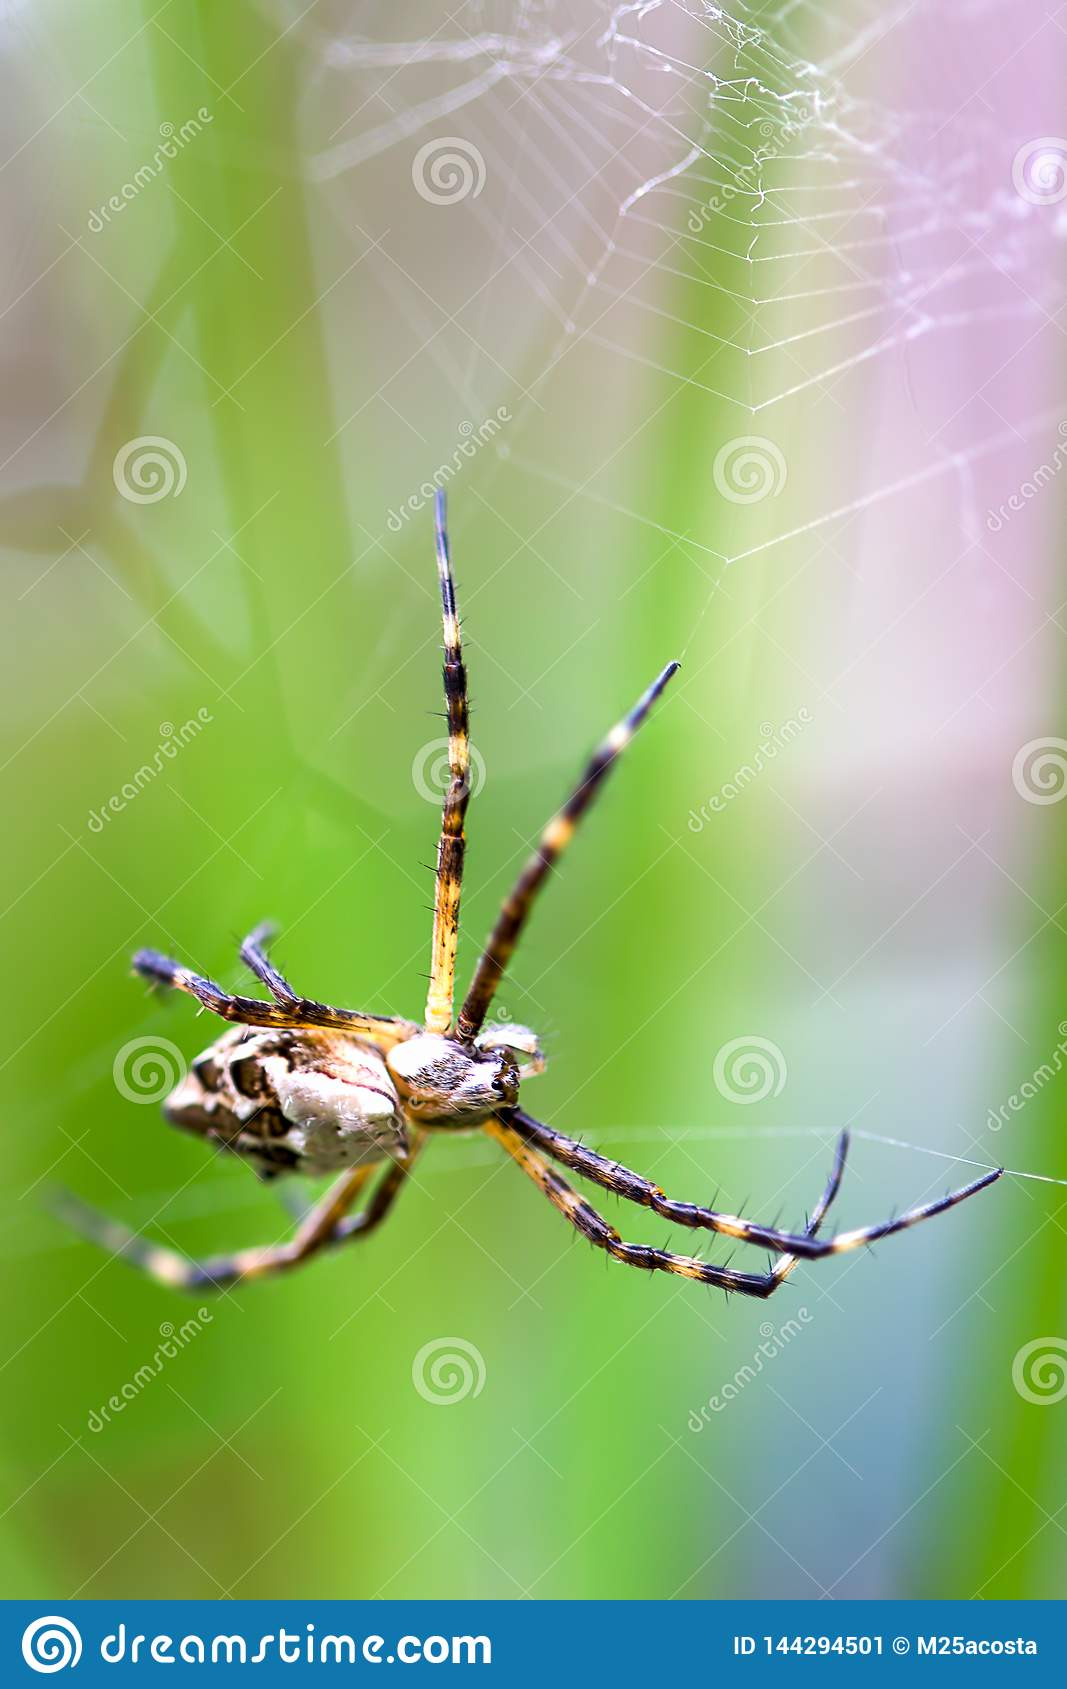 Macro photography of a silver argiope spider